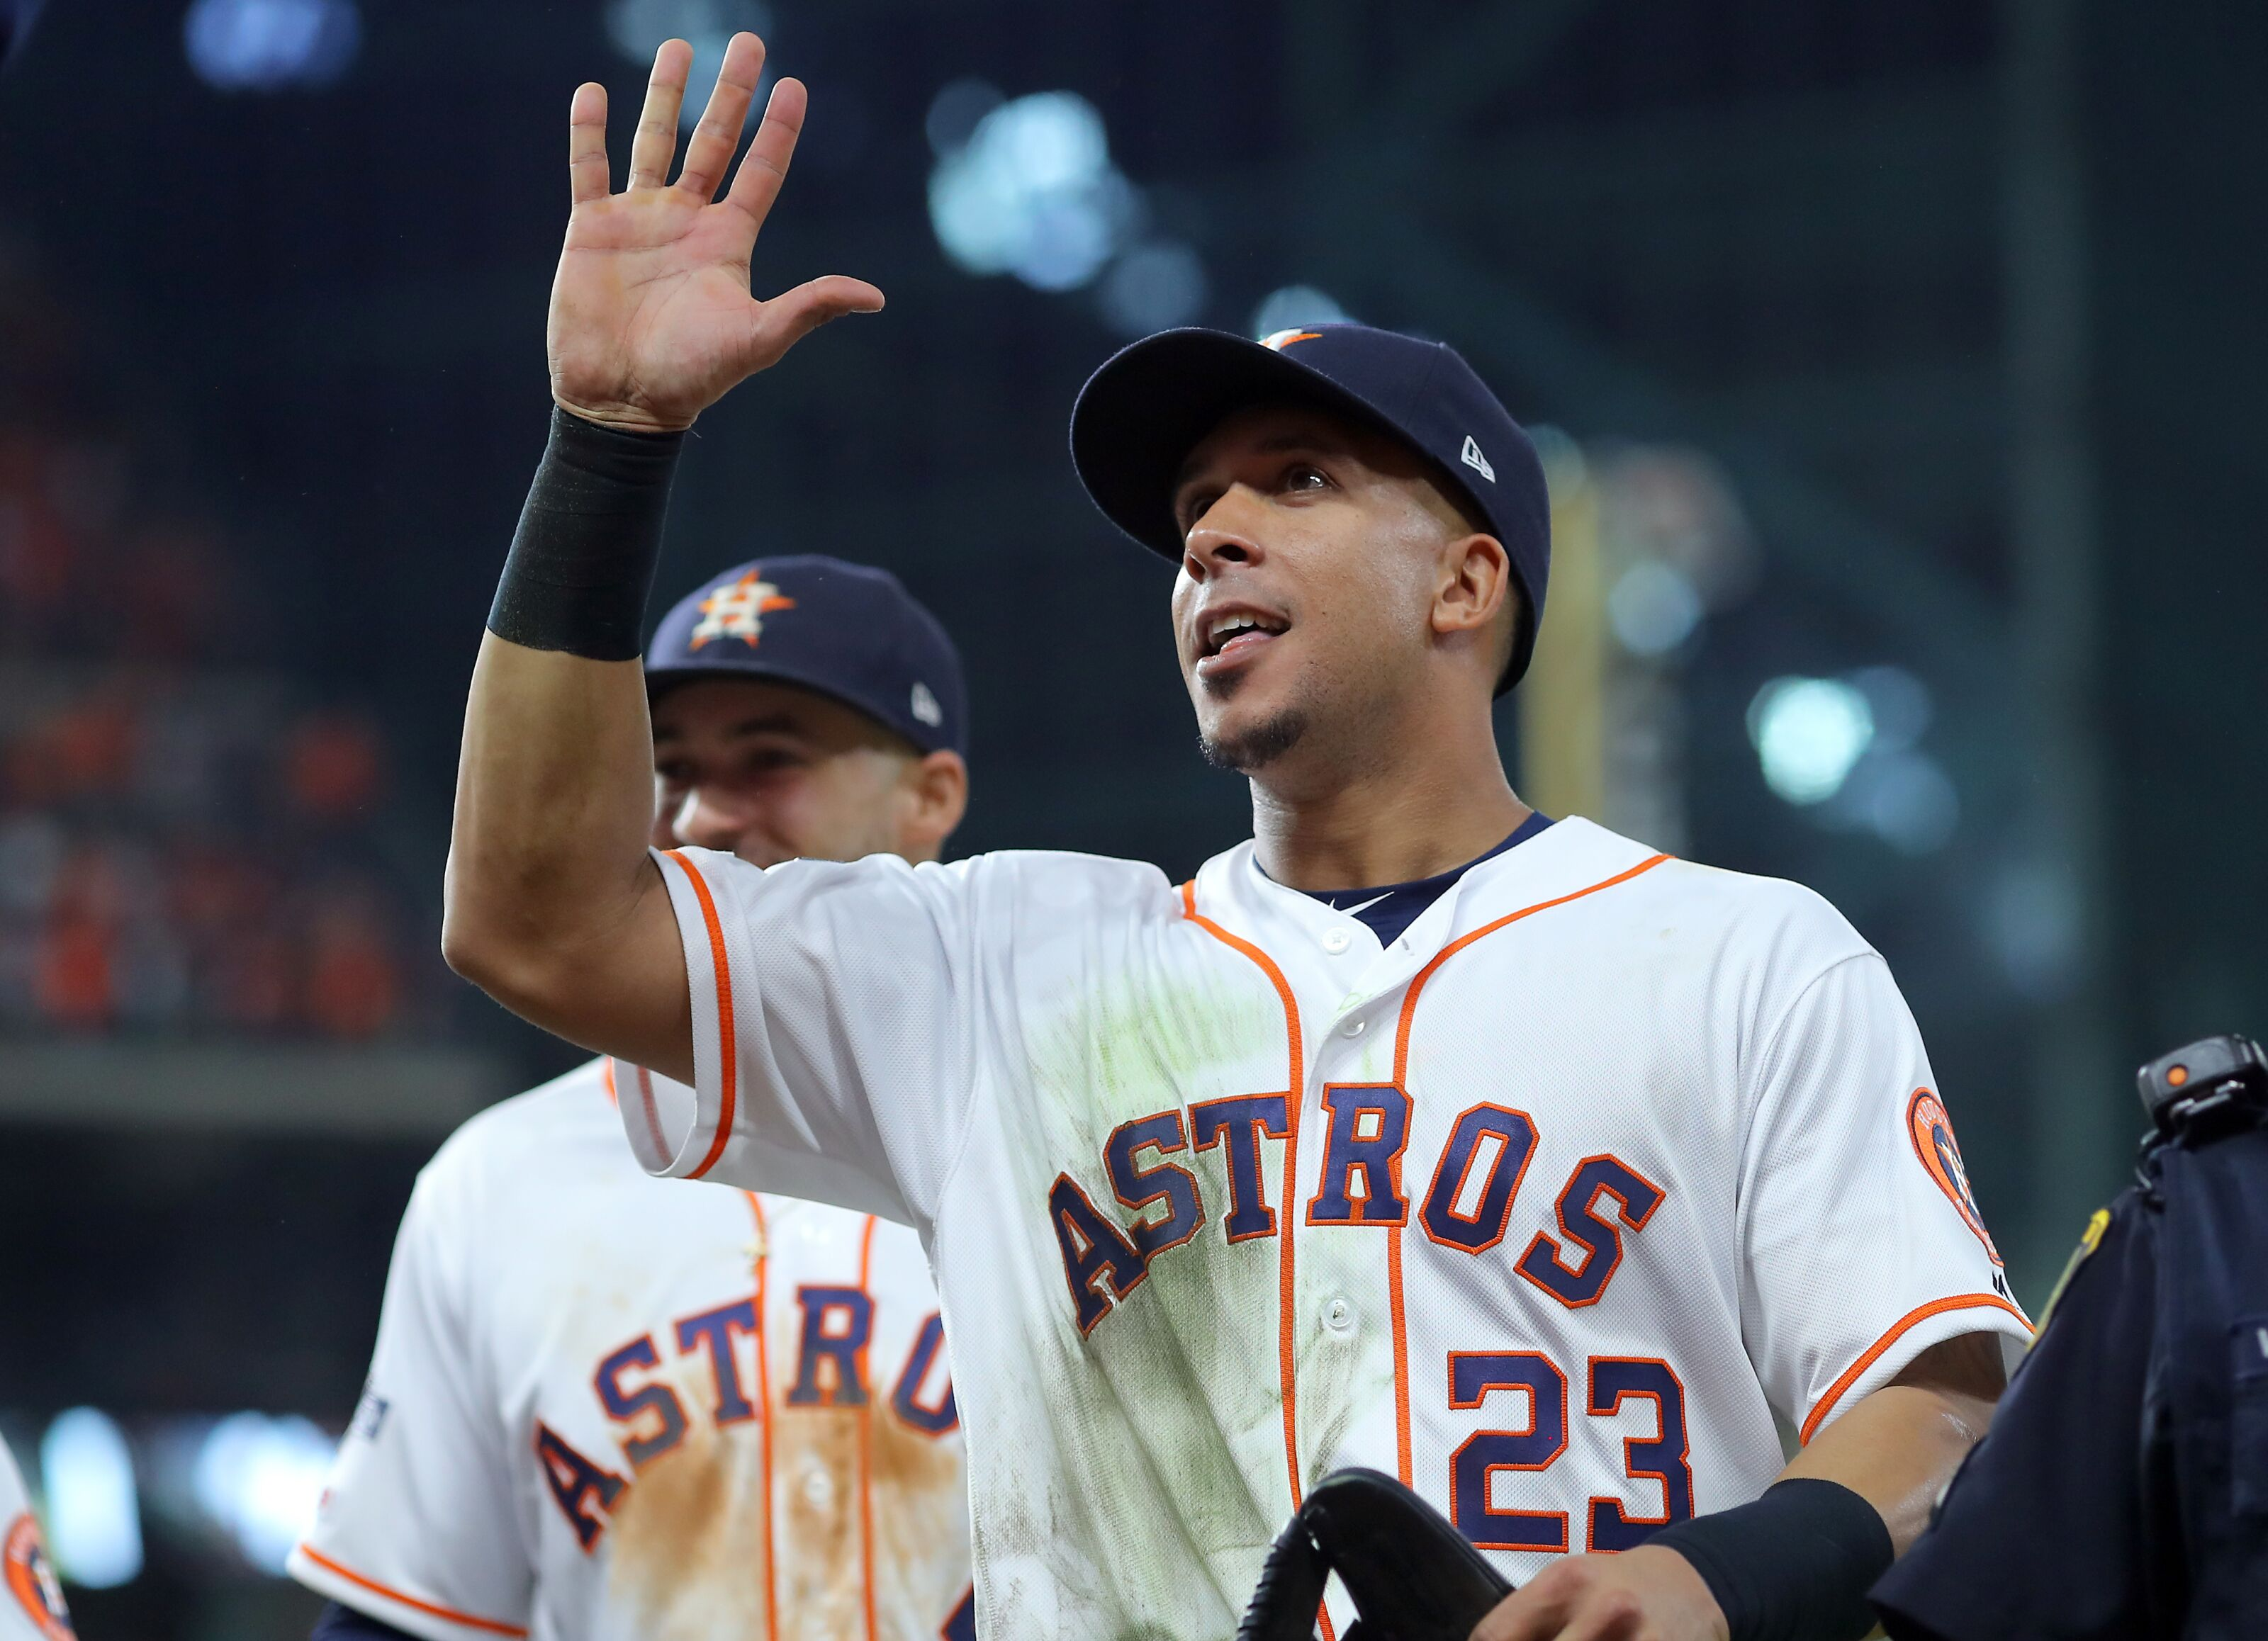 Houston Astros: Revisiting Michael Brantley deal after first season